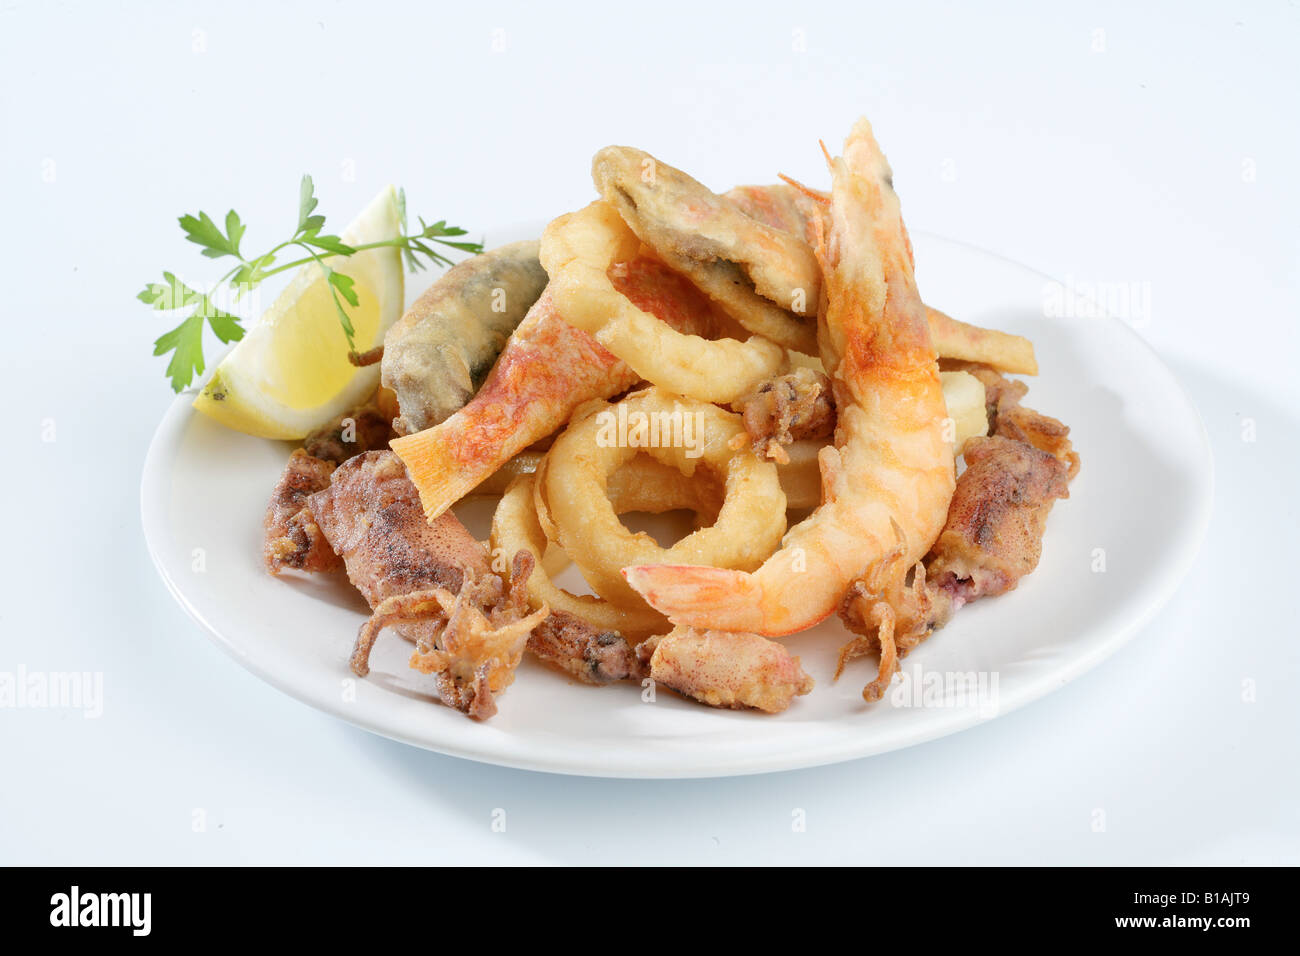 Fried fish and seefood - Stock Image